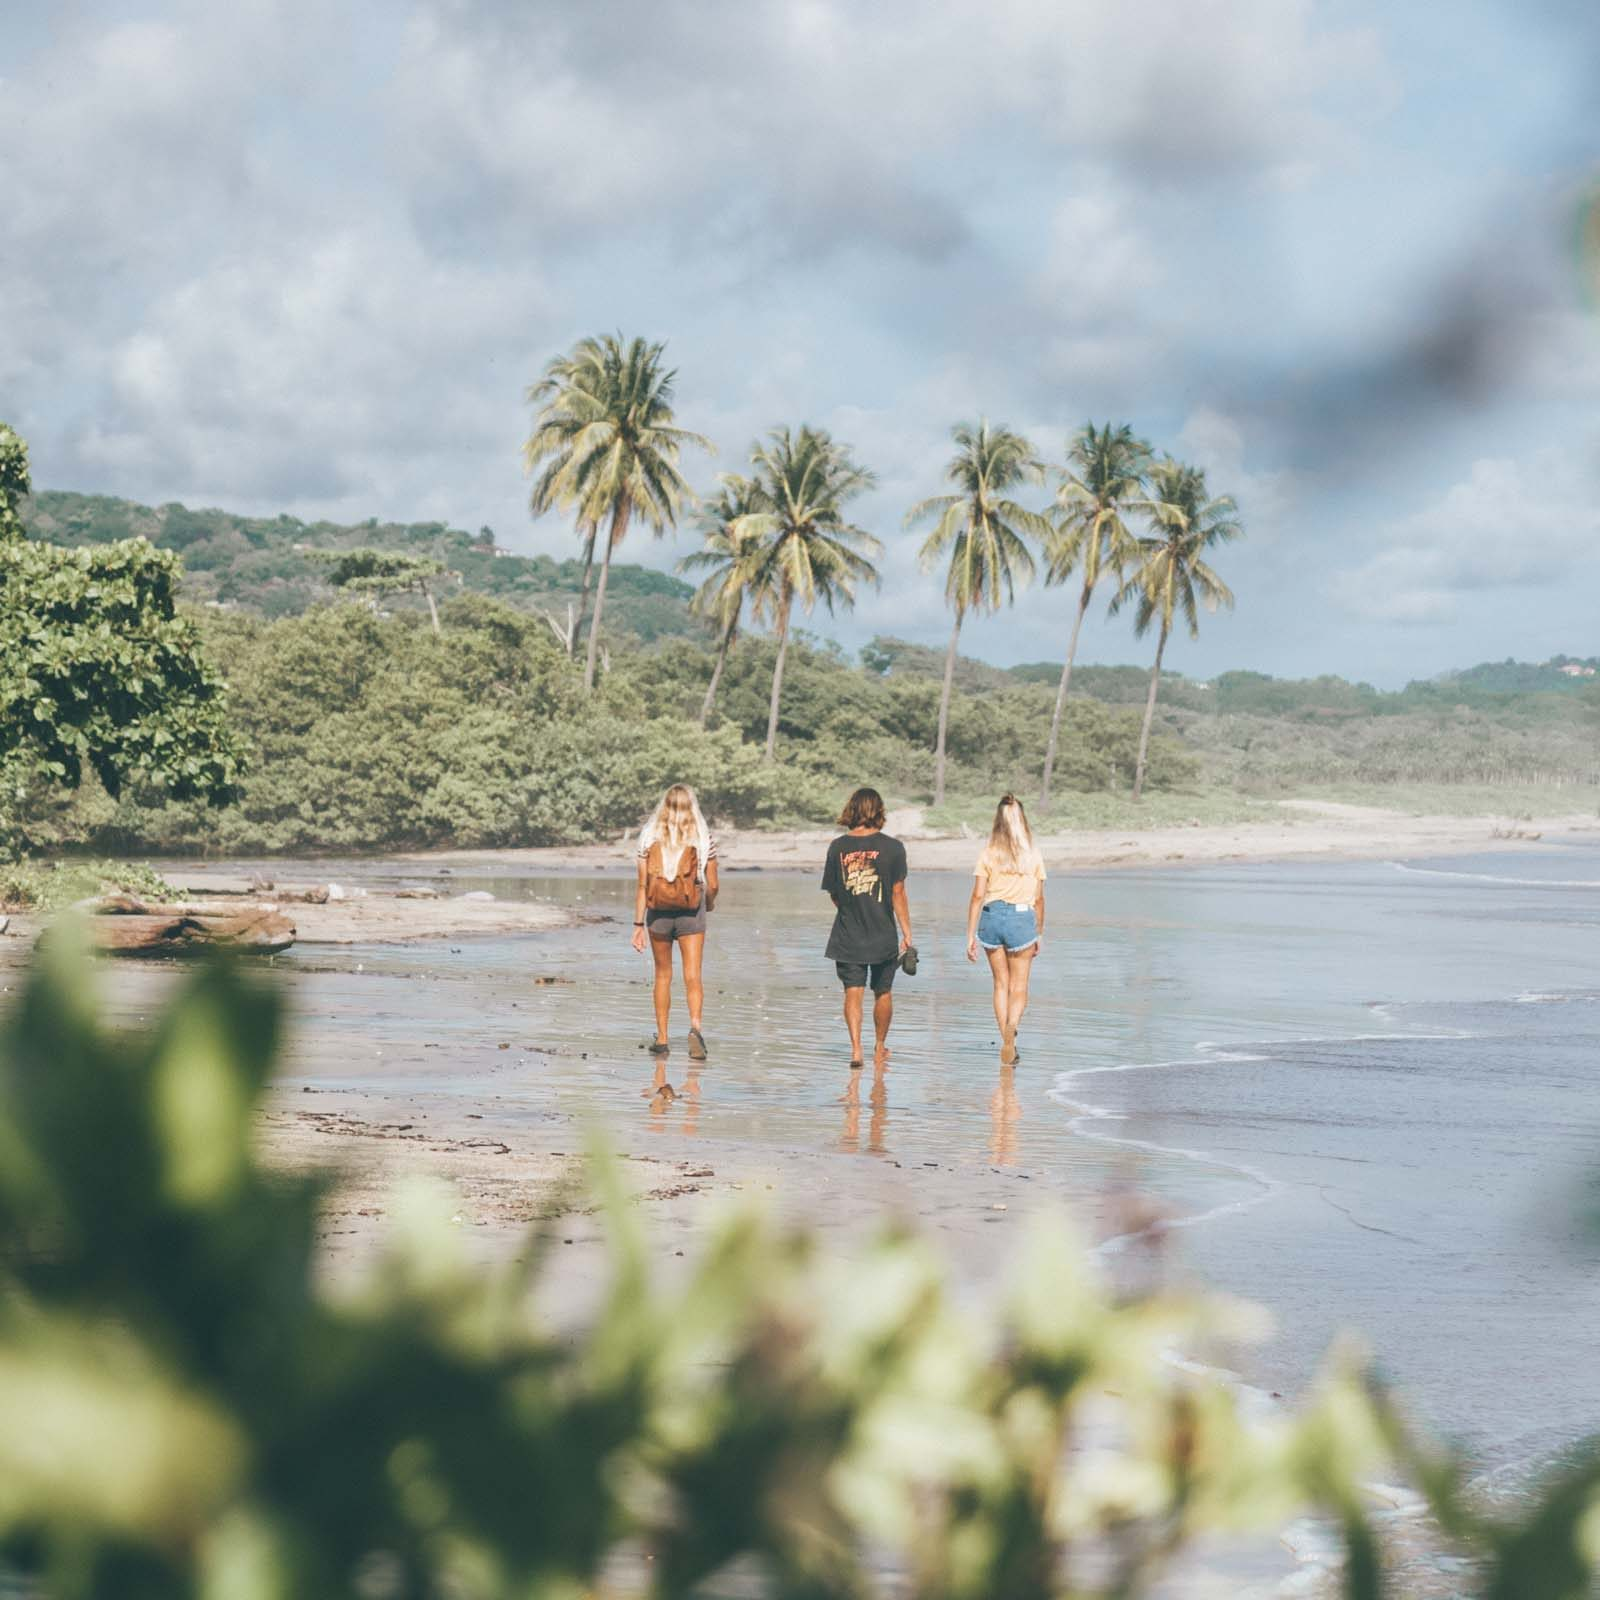 Beach walk explore nosara costa rica